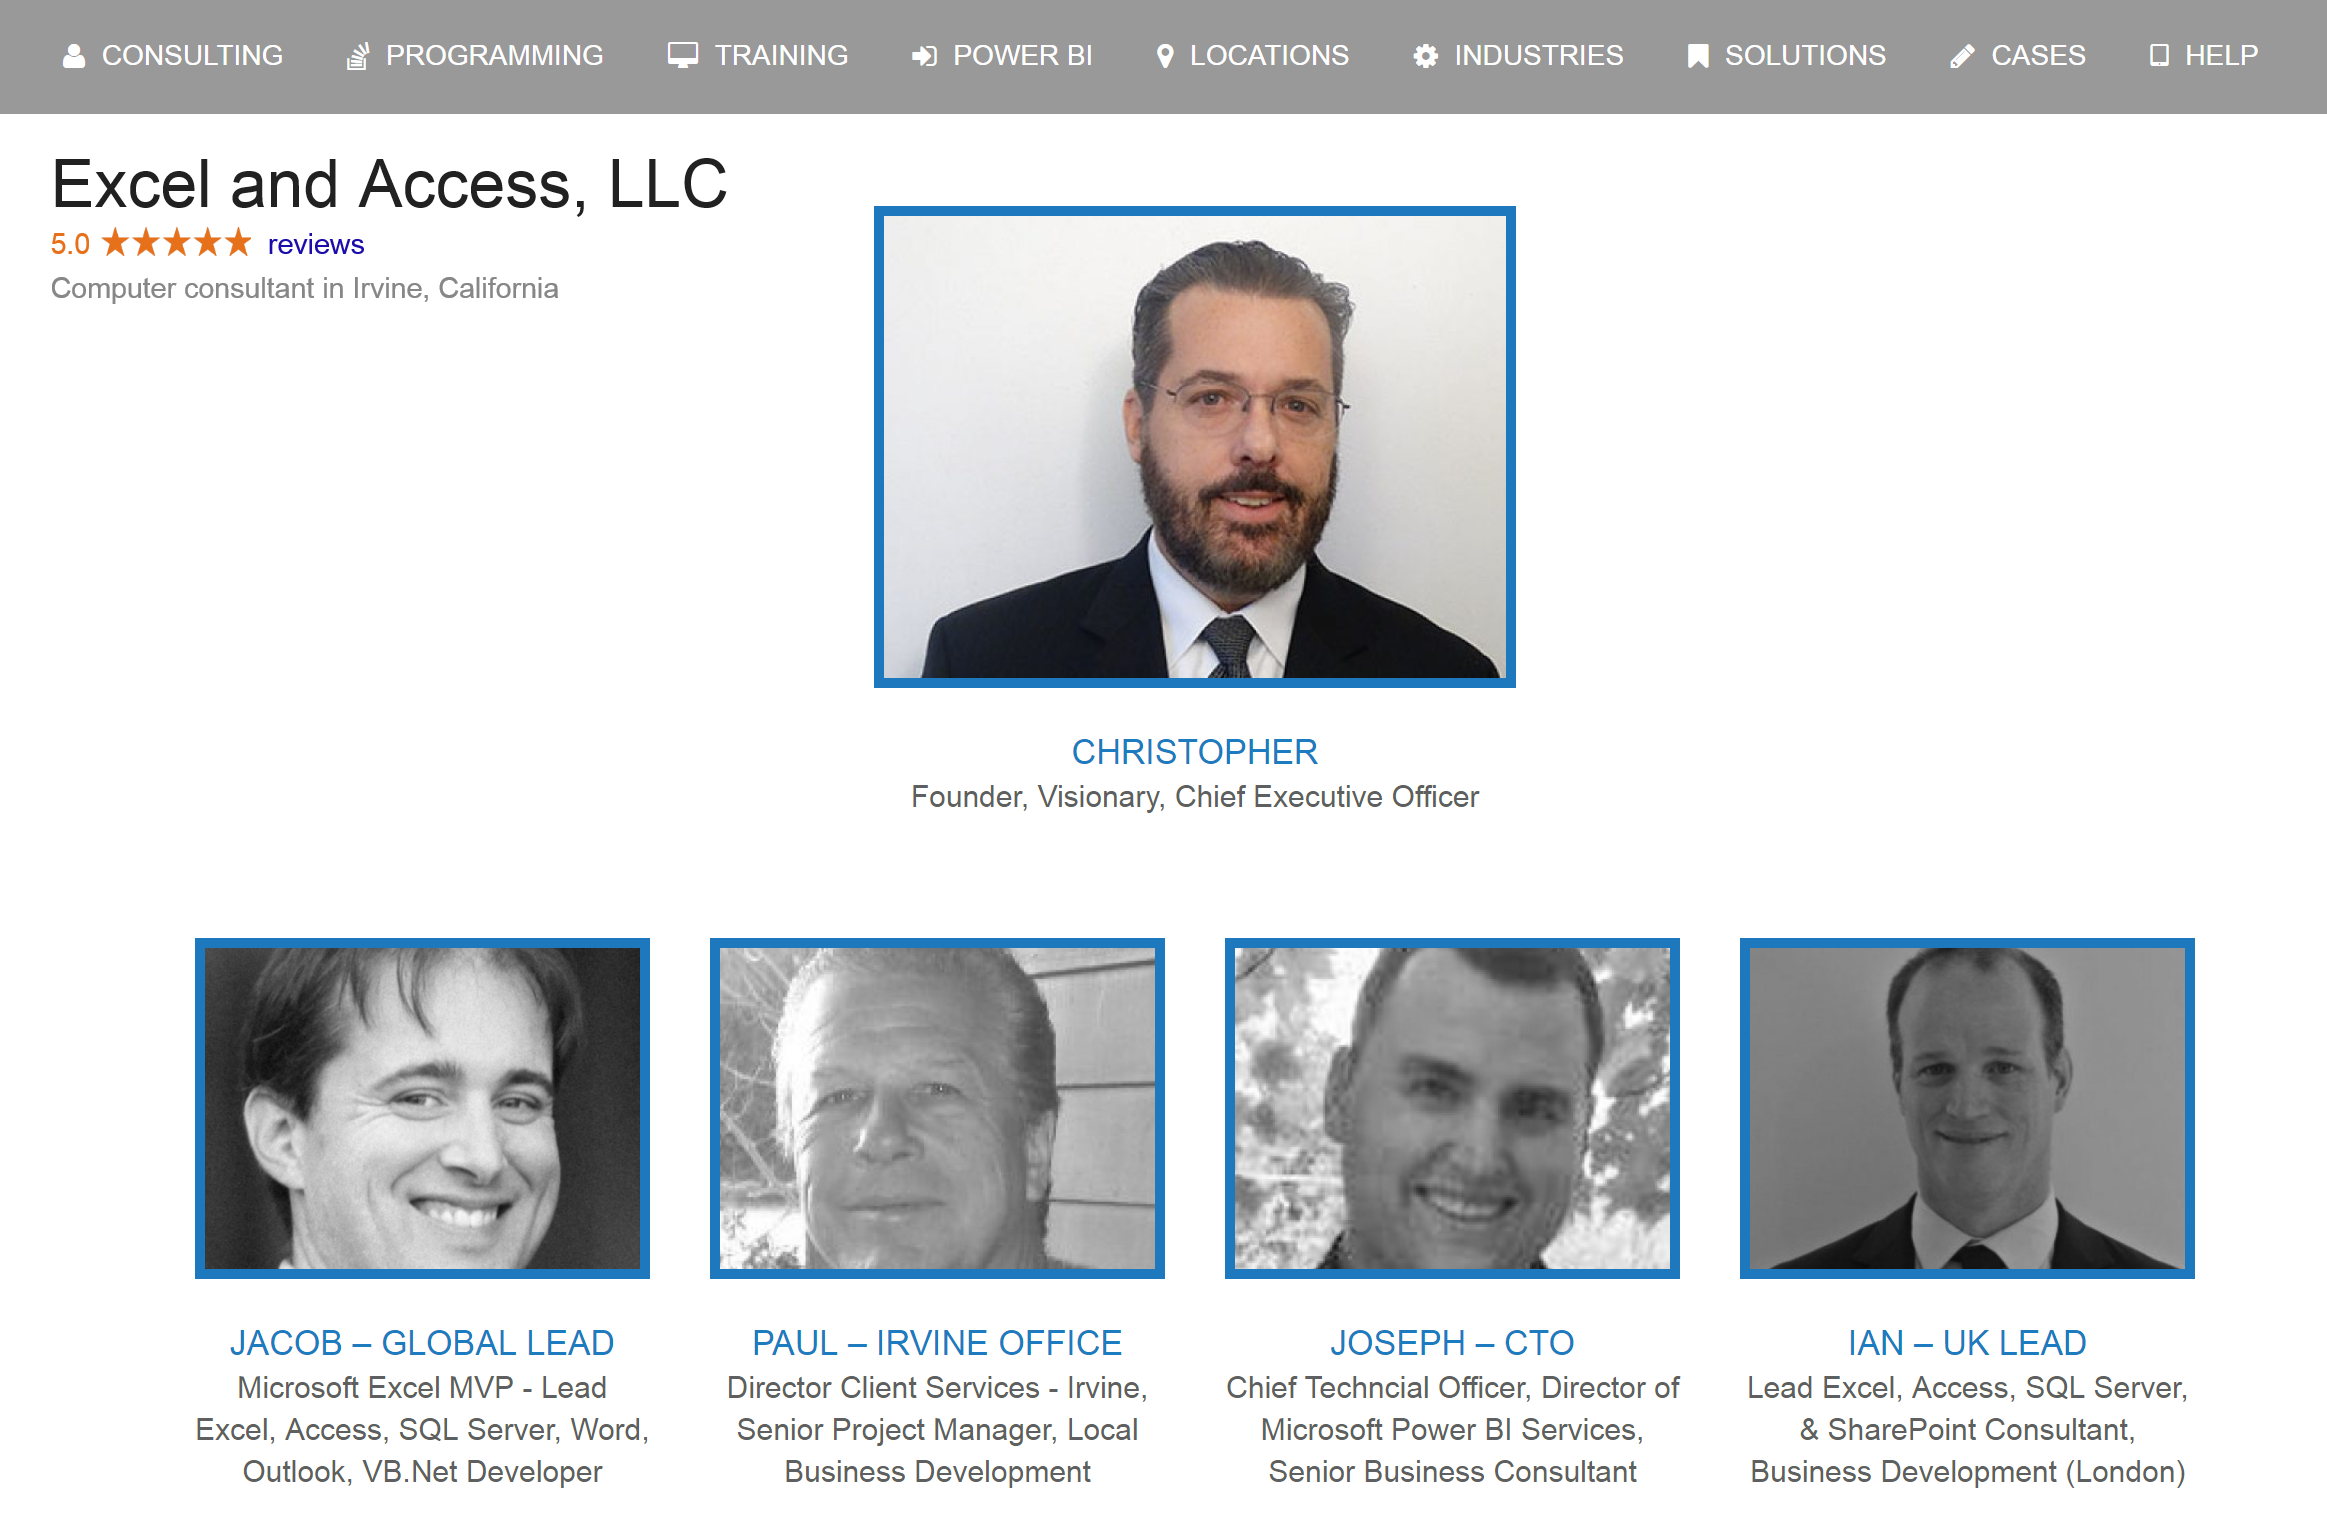 Meet the team of expert Excel consultants